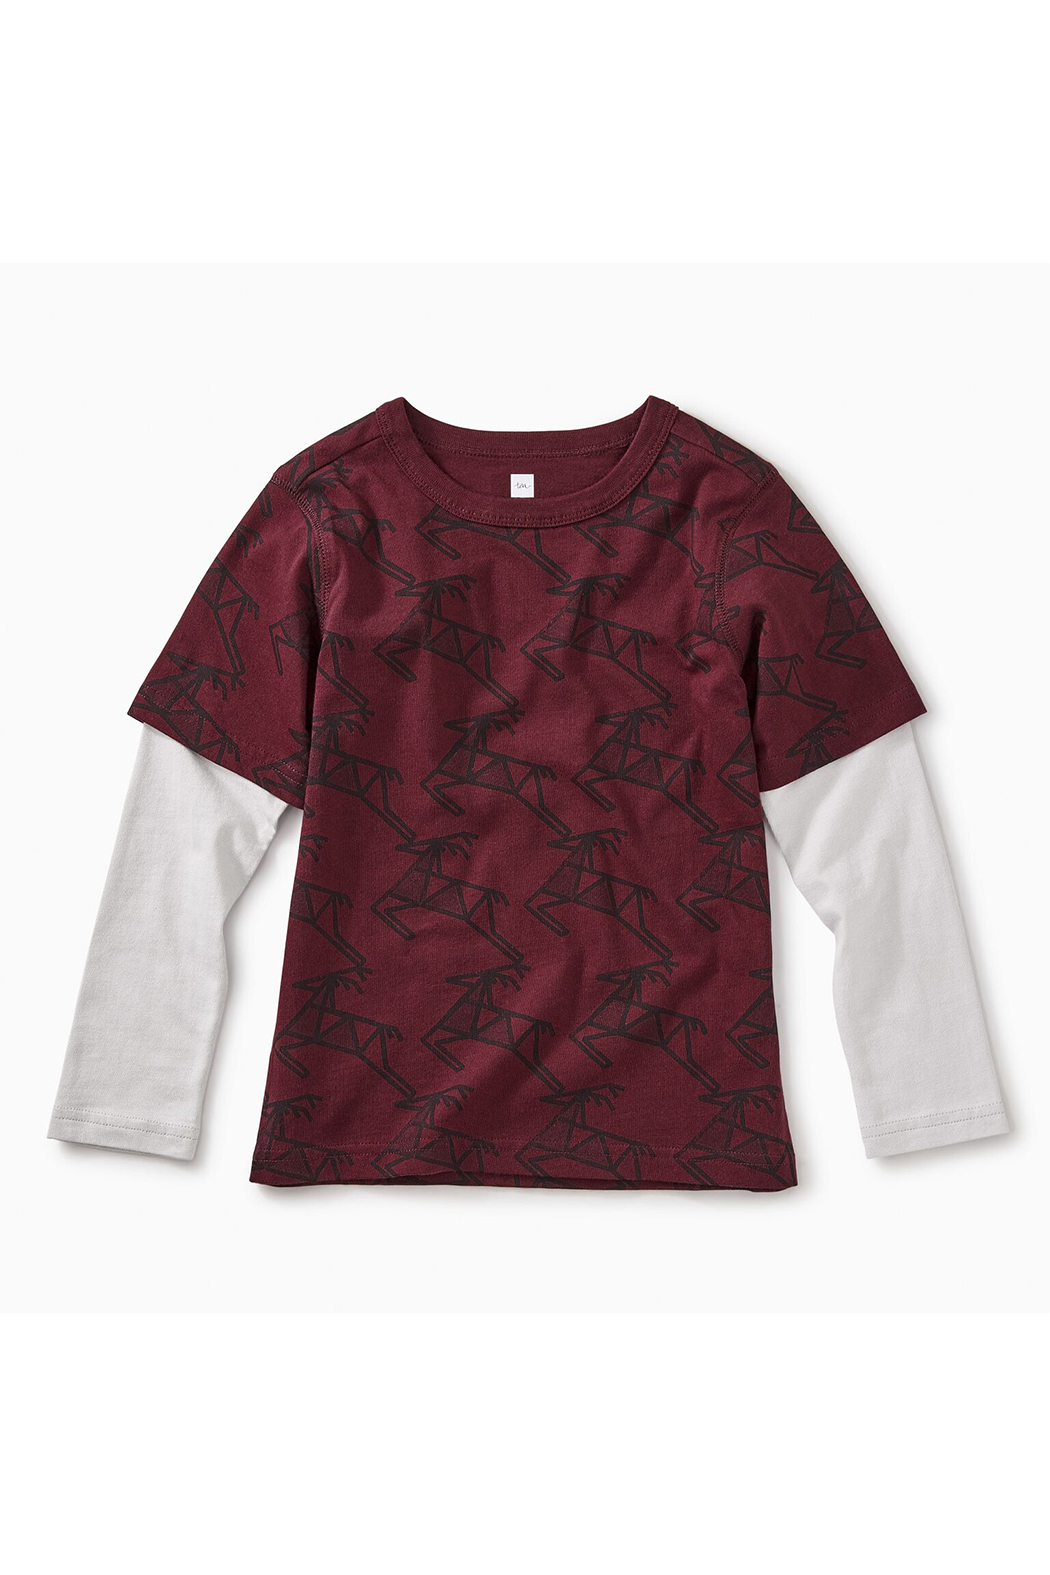 Tea Collection Scandi Stag Layered Tee - Main Image